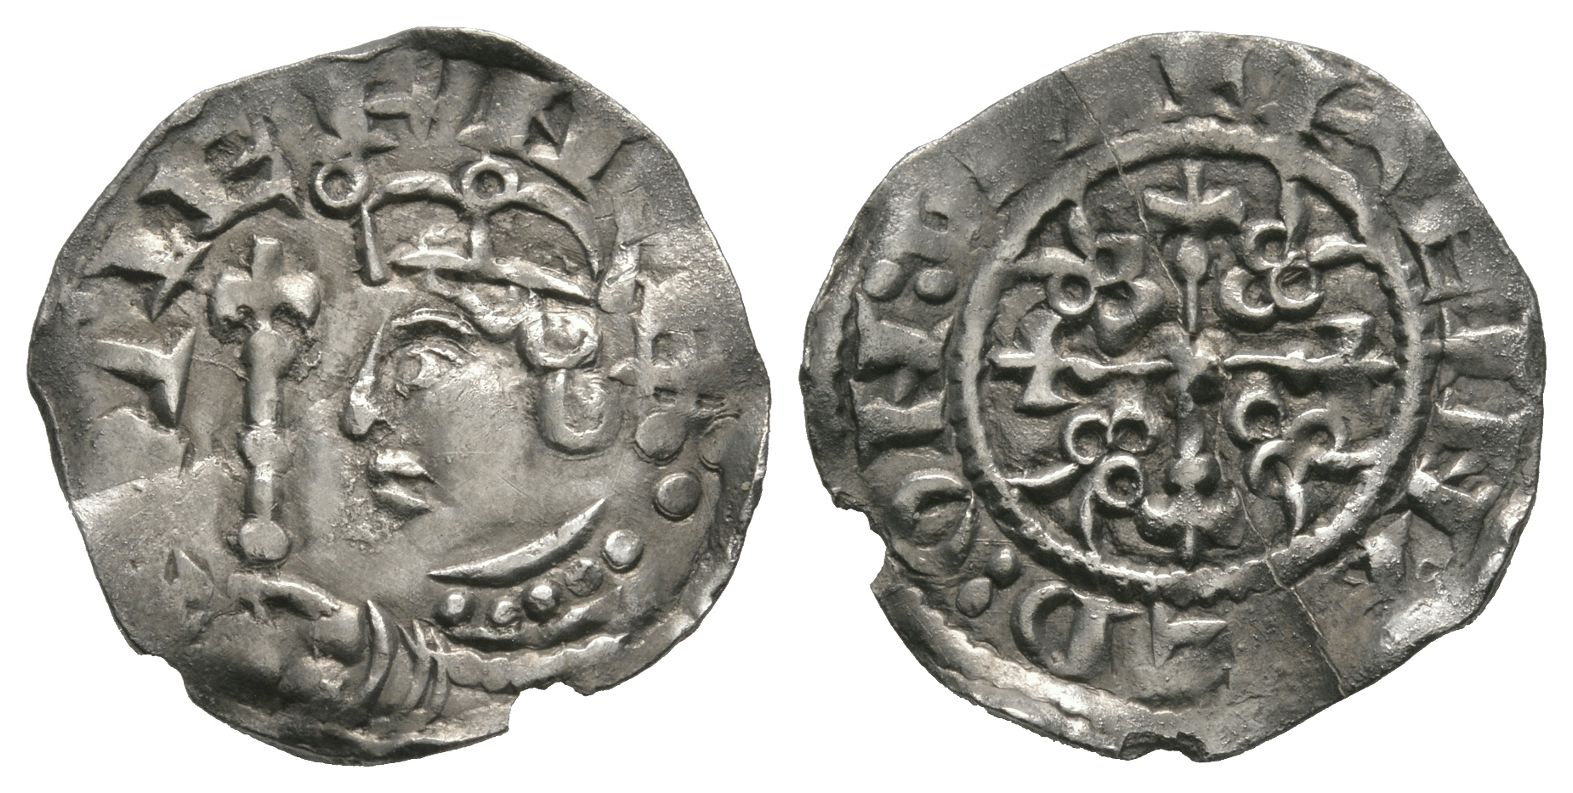 Norman Coins - Stephen - Cambridge / Reinald - Cross and Piles Penny